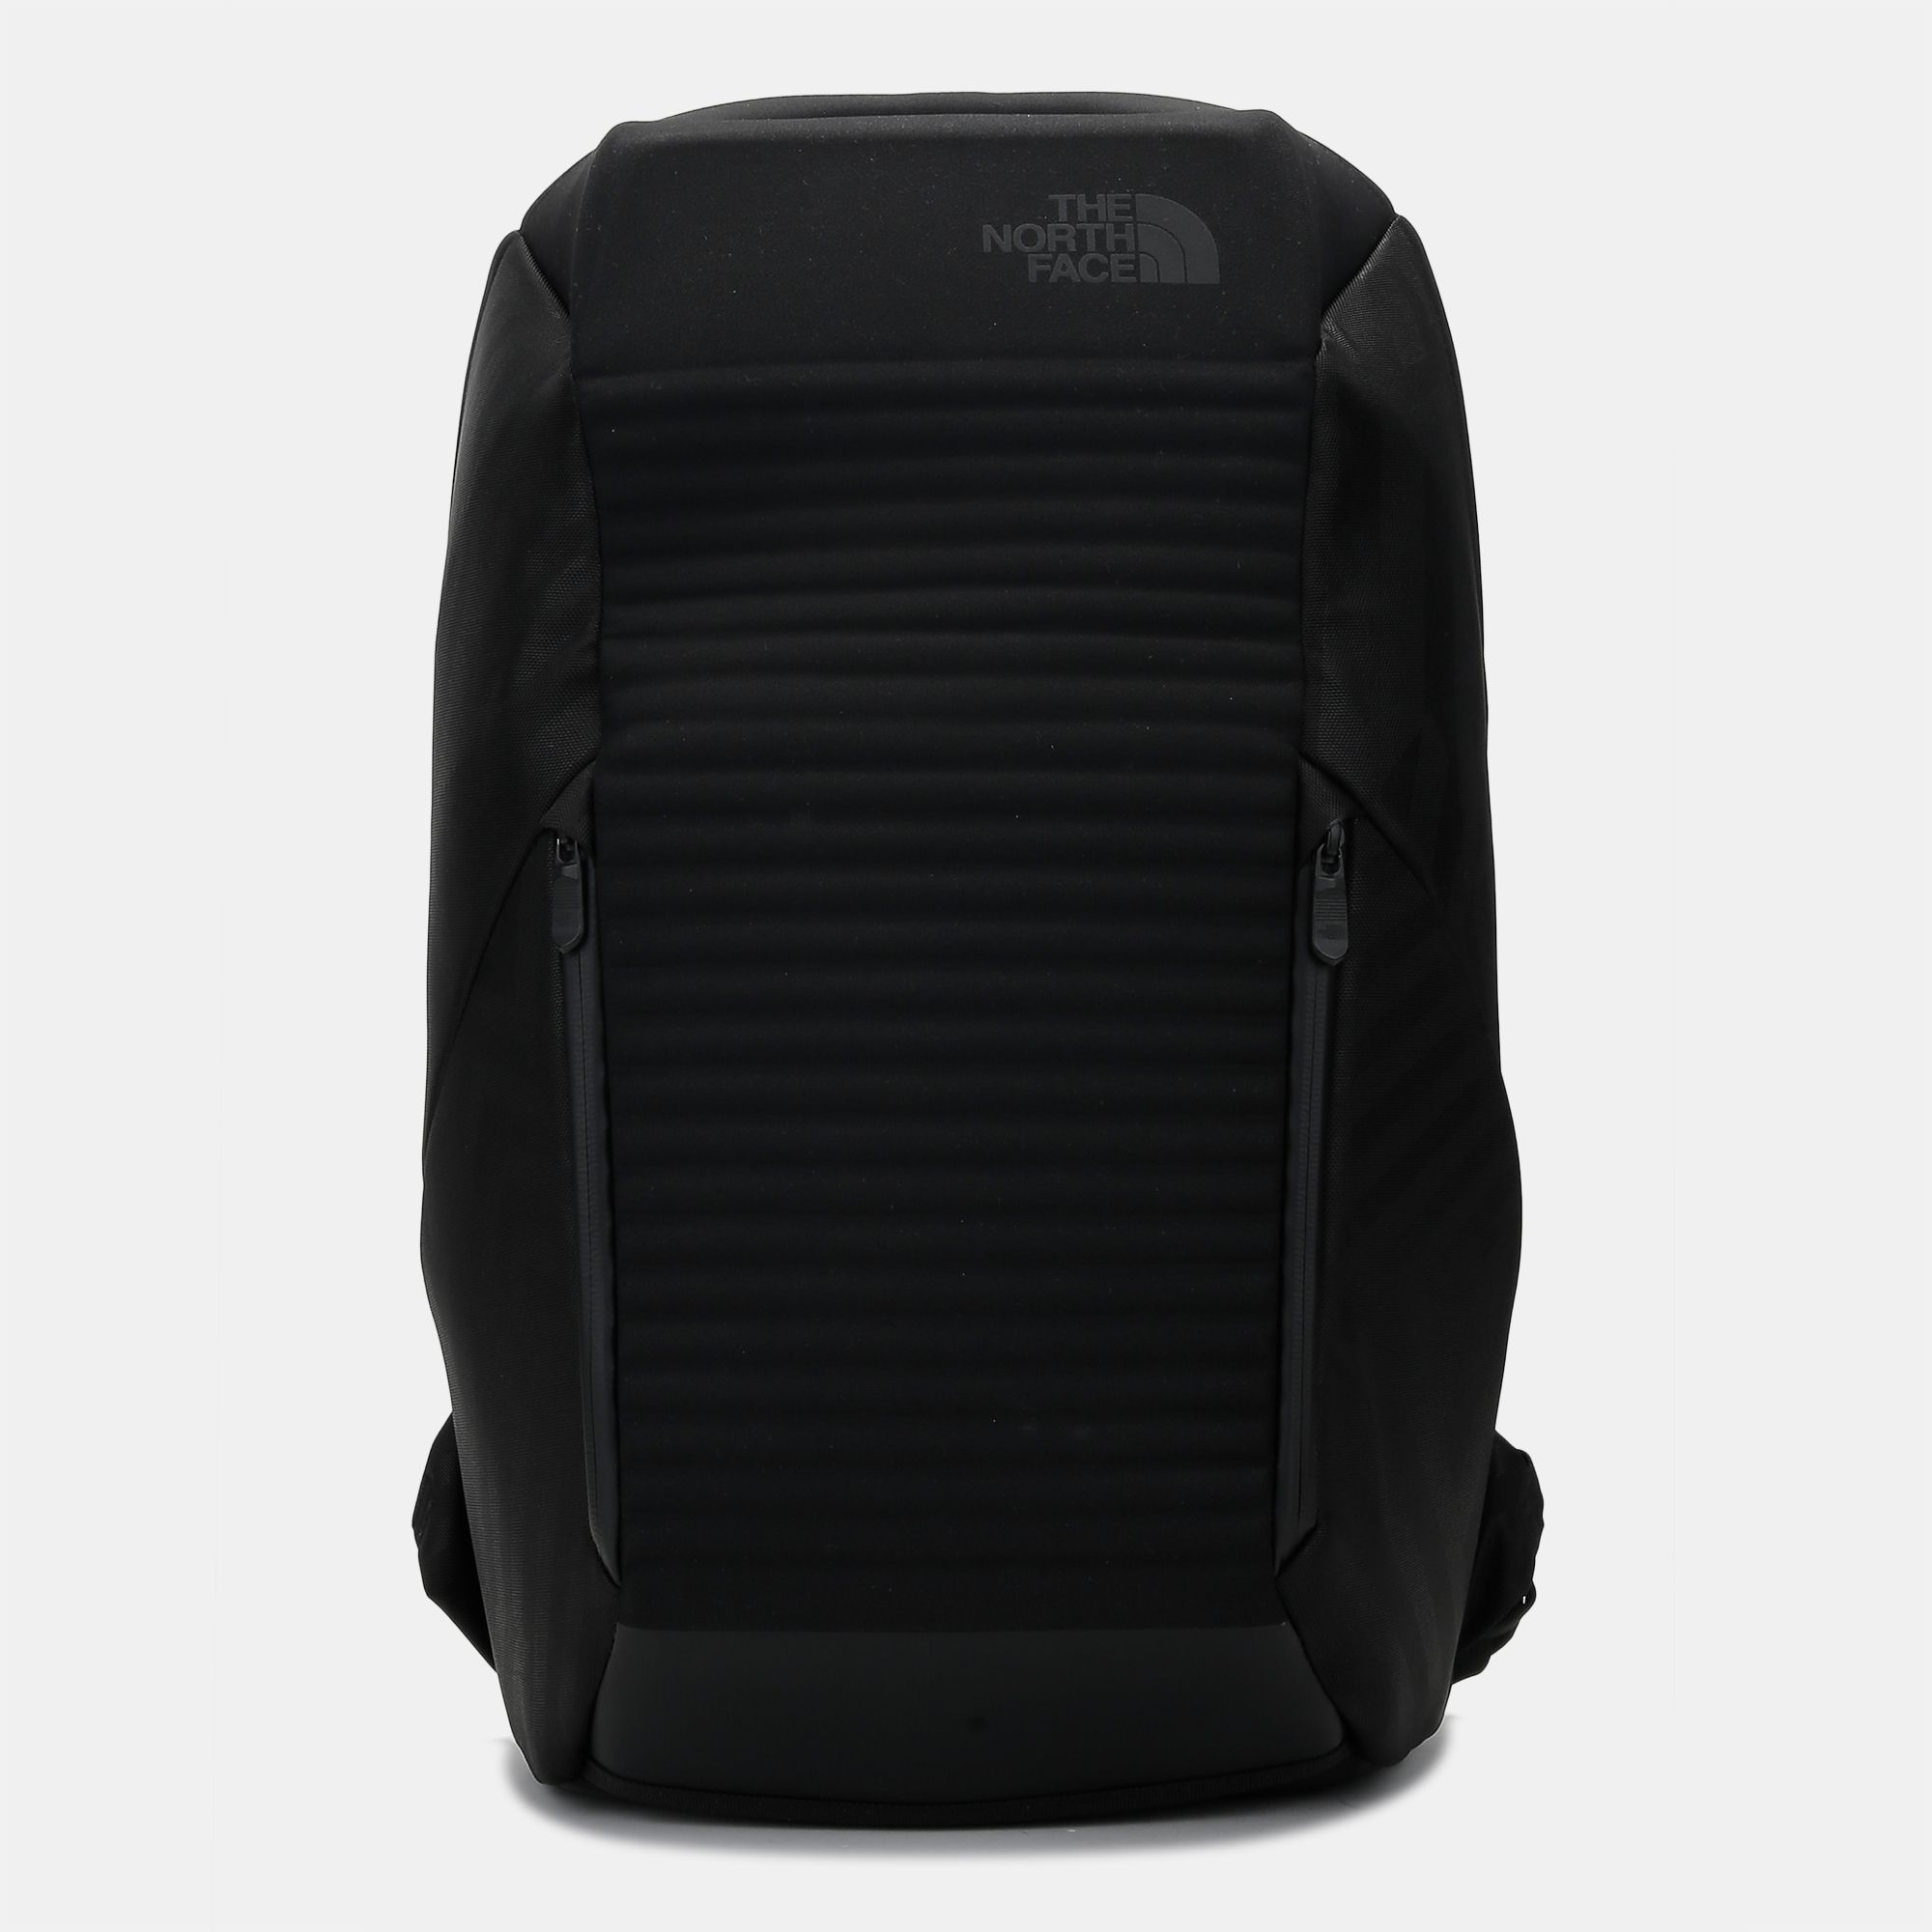 79749a705 The North Face Access 22l Backpack - CEAGESP